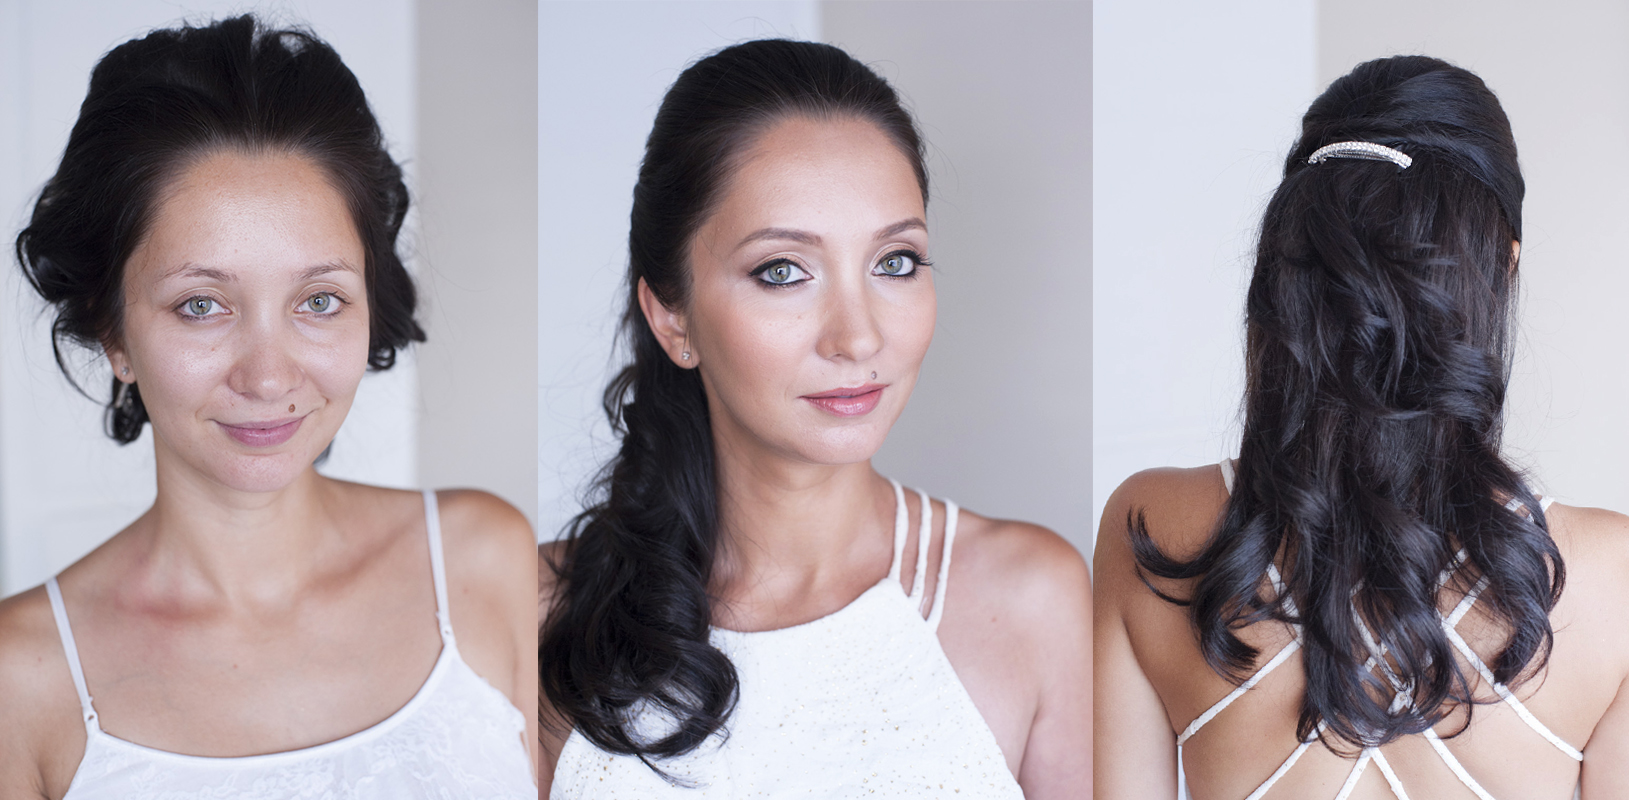 BeautyAffair before and after bridal makeup green eyes hairstyle half up down by Agne.jpg